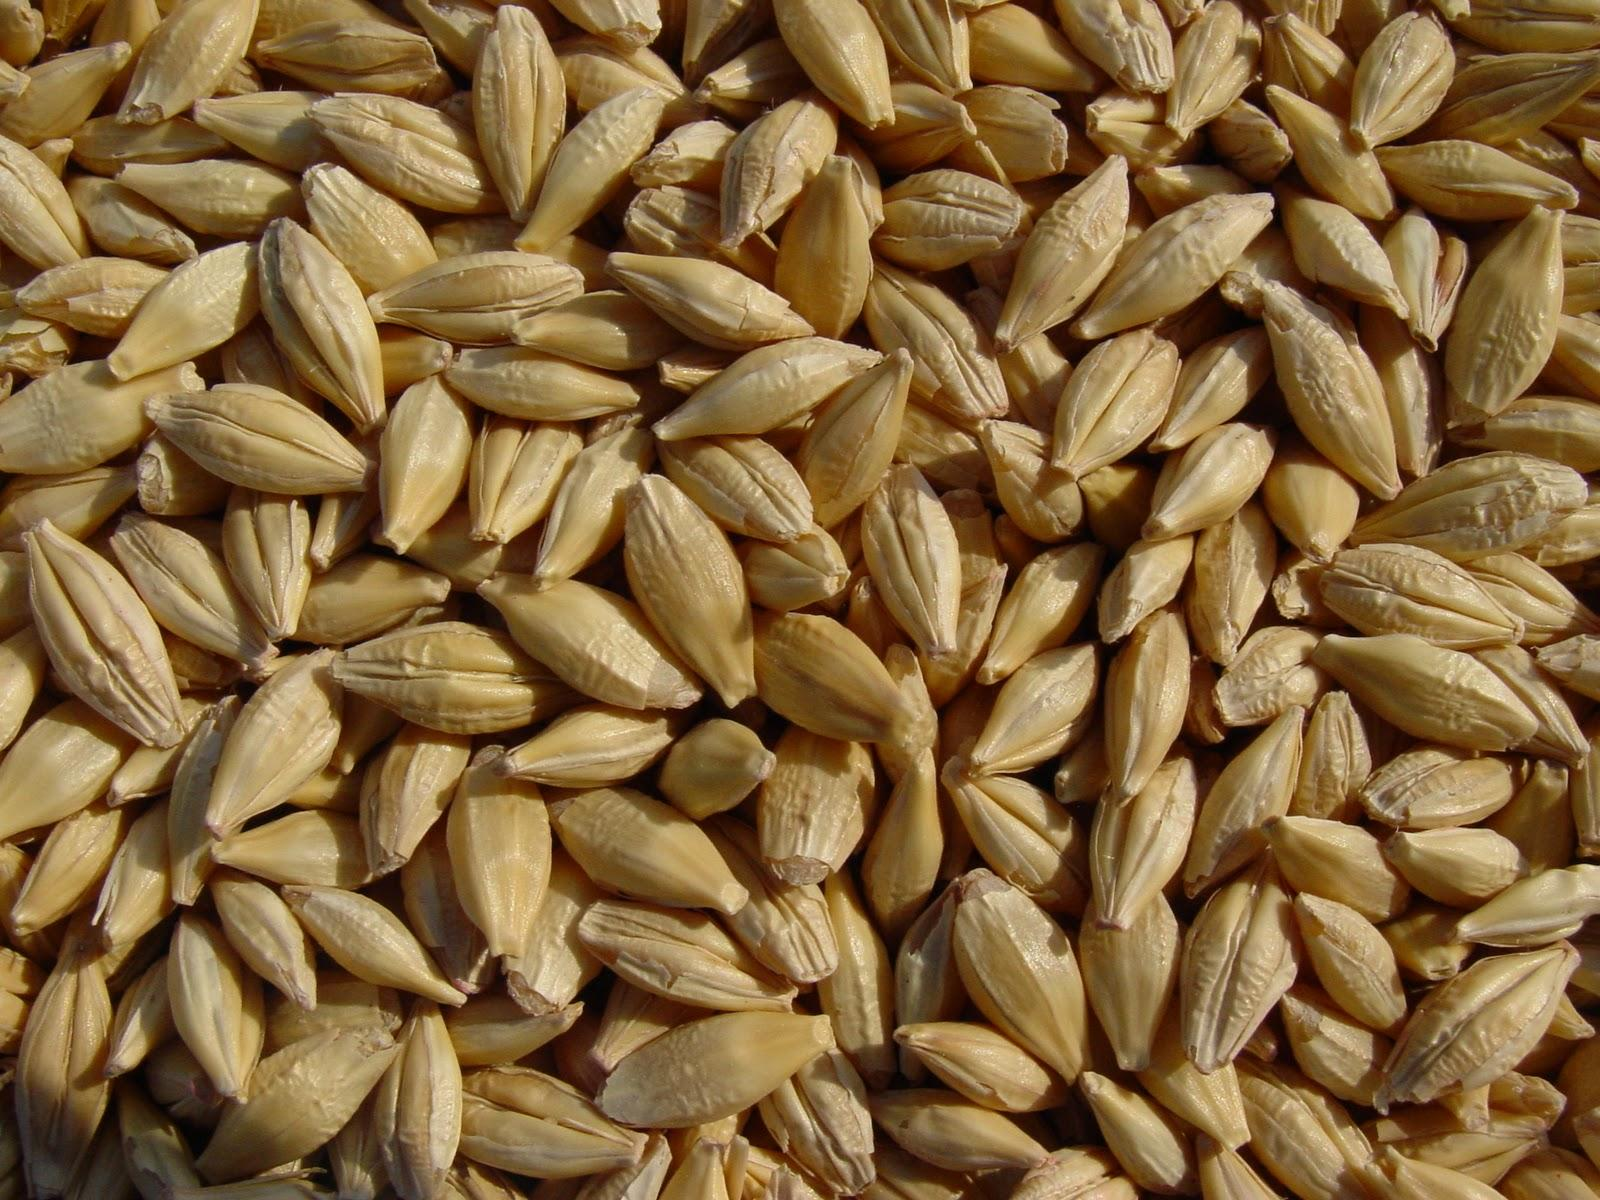 Barley Seeds (1kg) For Sprouting And Juicing By Jm Microgreens.